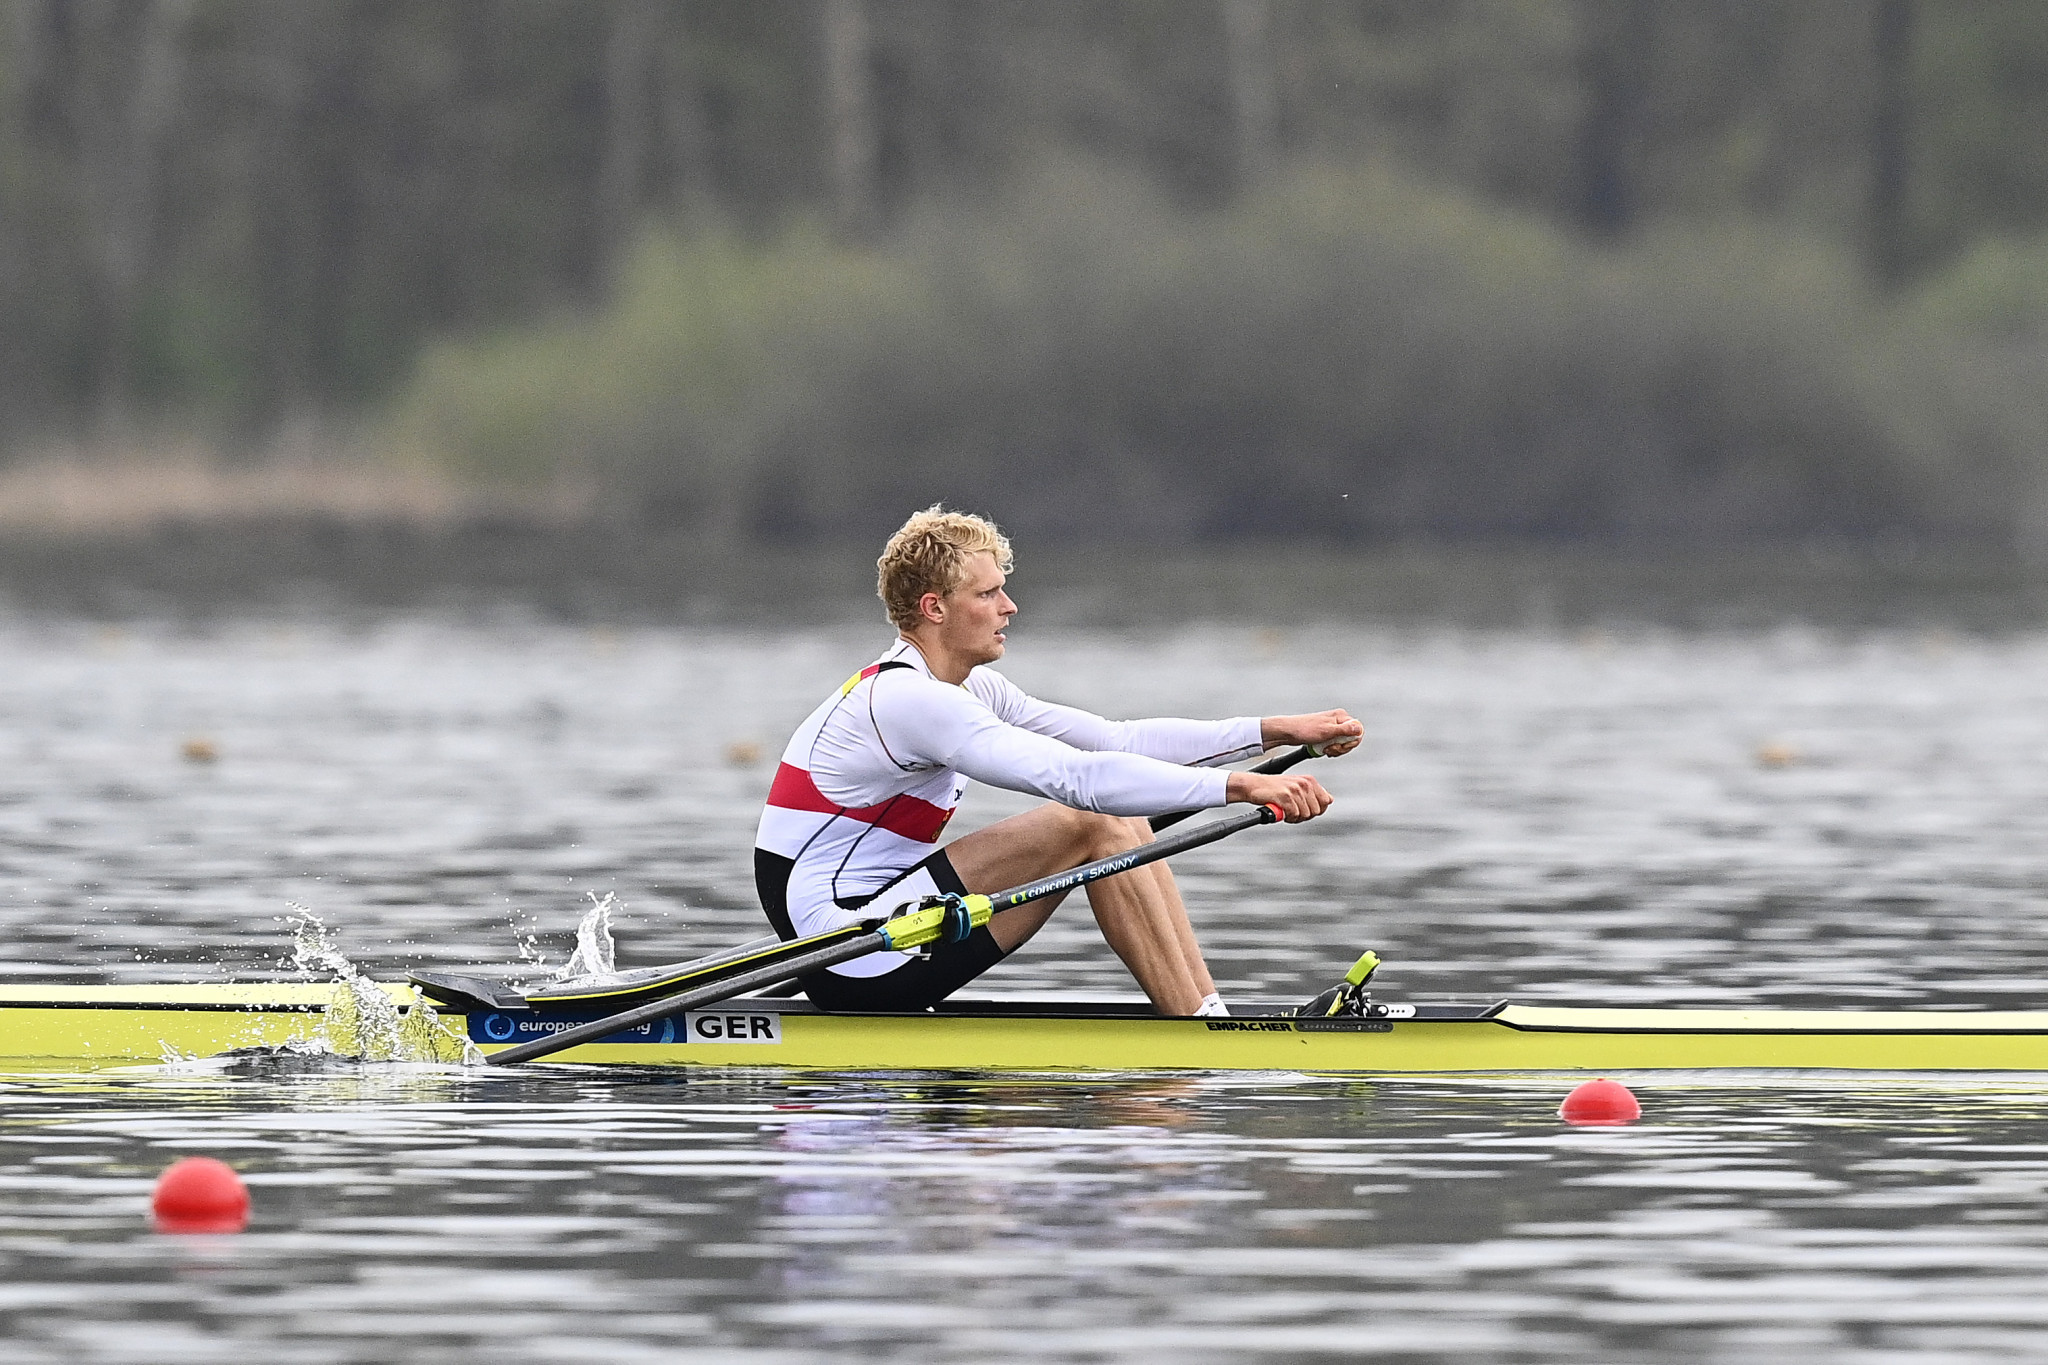 Zeidler among rowers to star in heats at Rowing World Cup in Lucerne